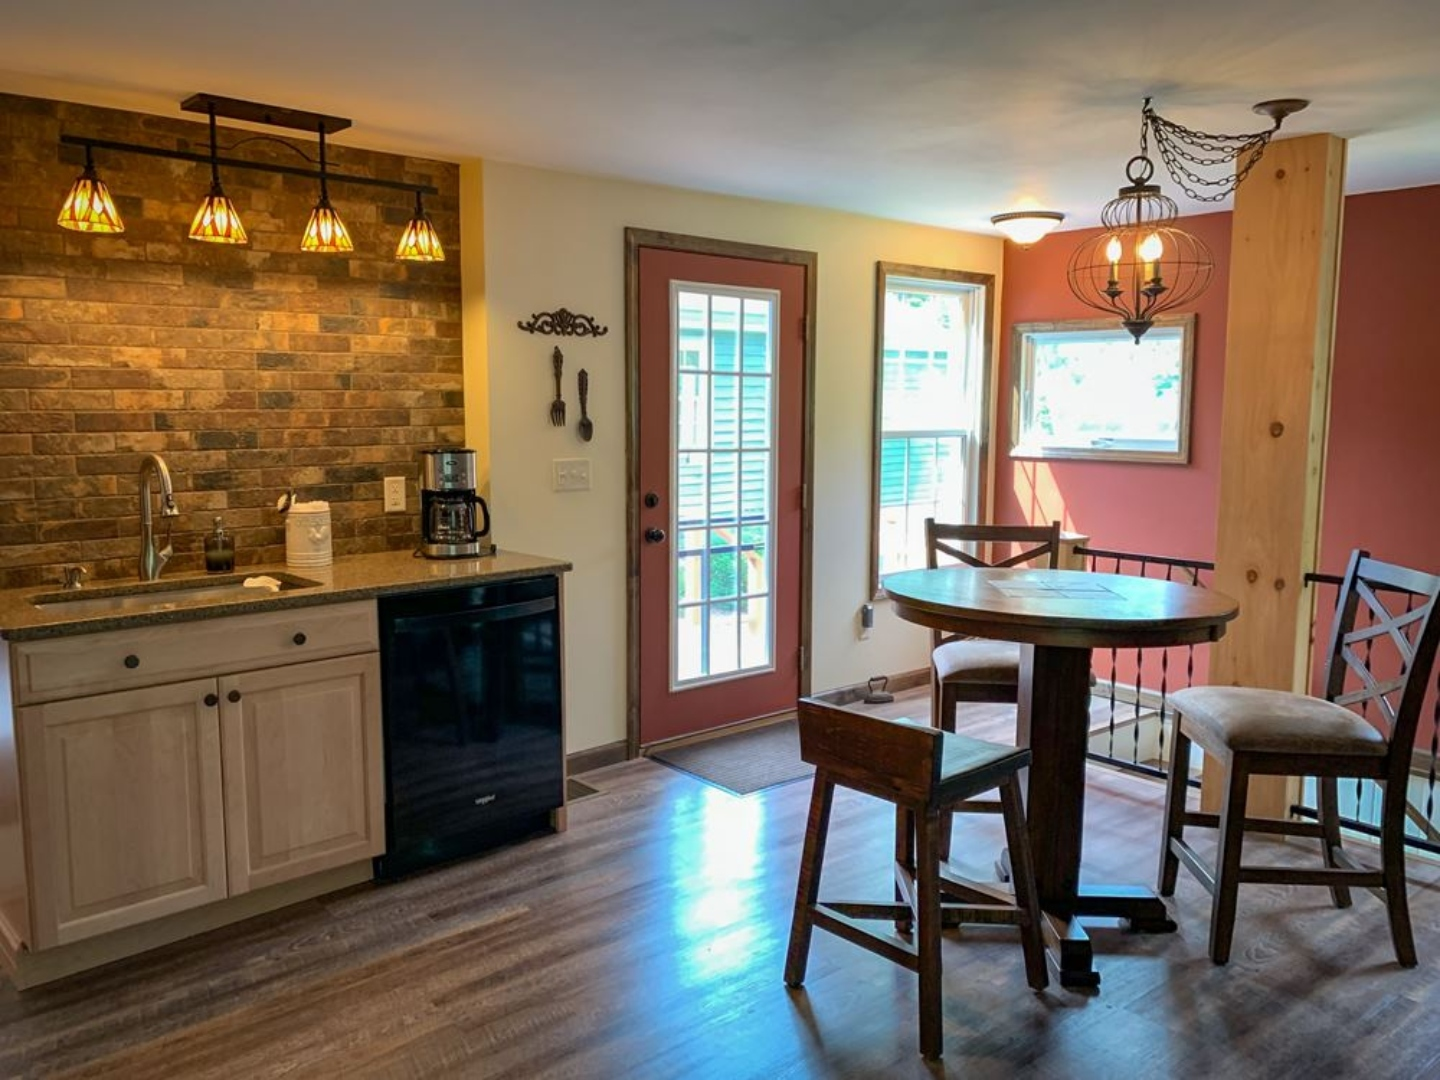 A kitchen with a dining room table at Red Fox Run Bed & Breakfast.